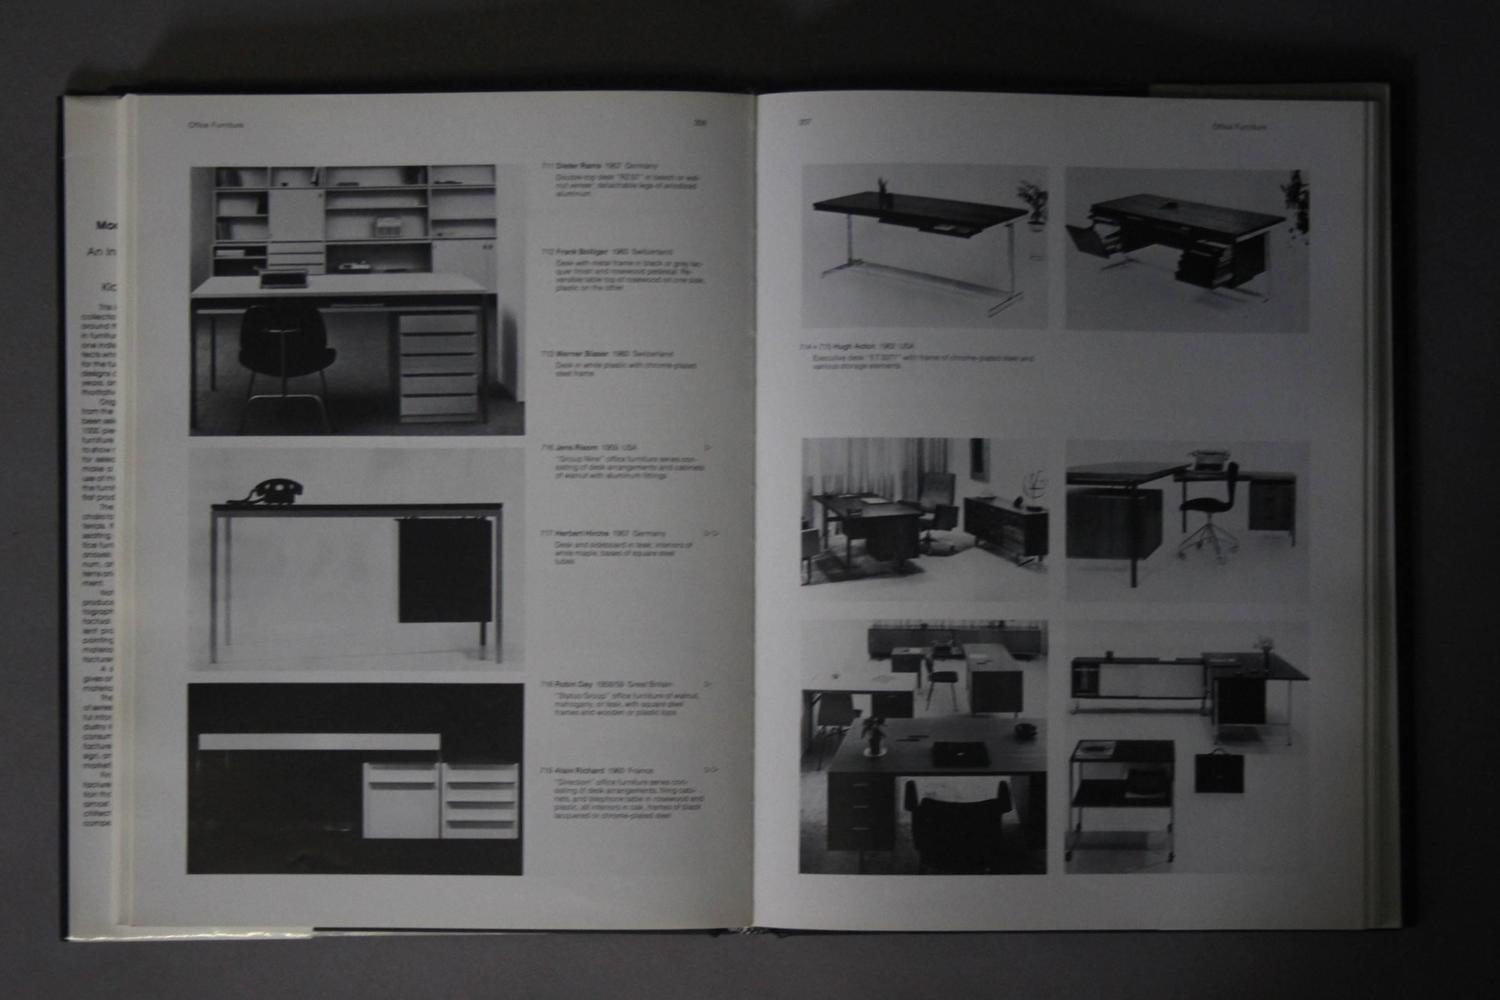 Modern furniture design 1950s 1980s book for sale at for 1980s furniture design